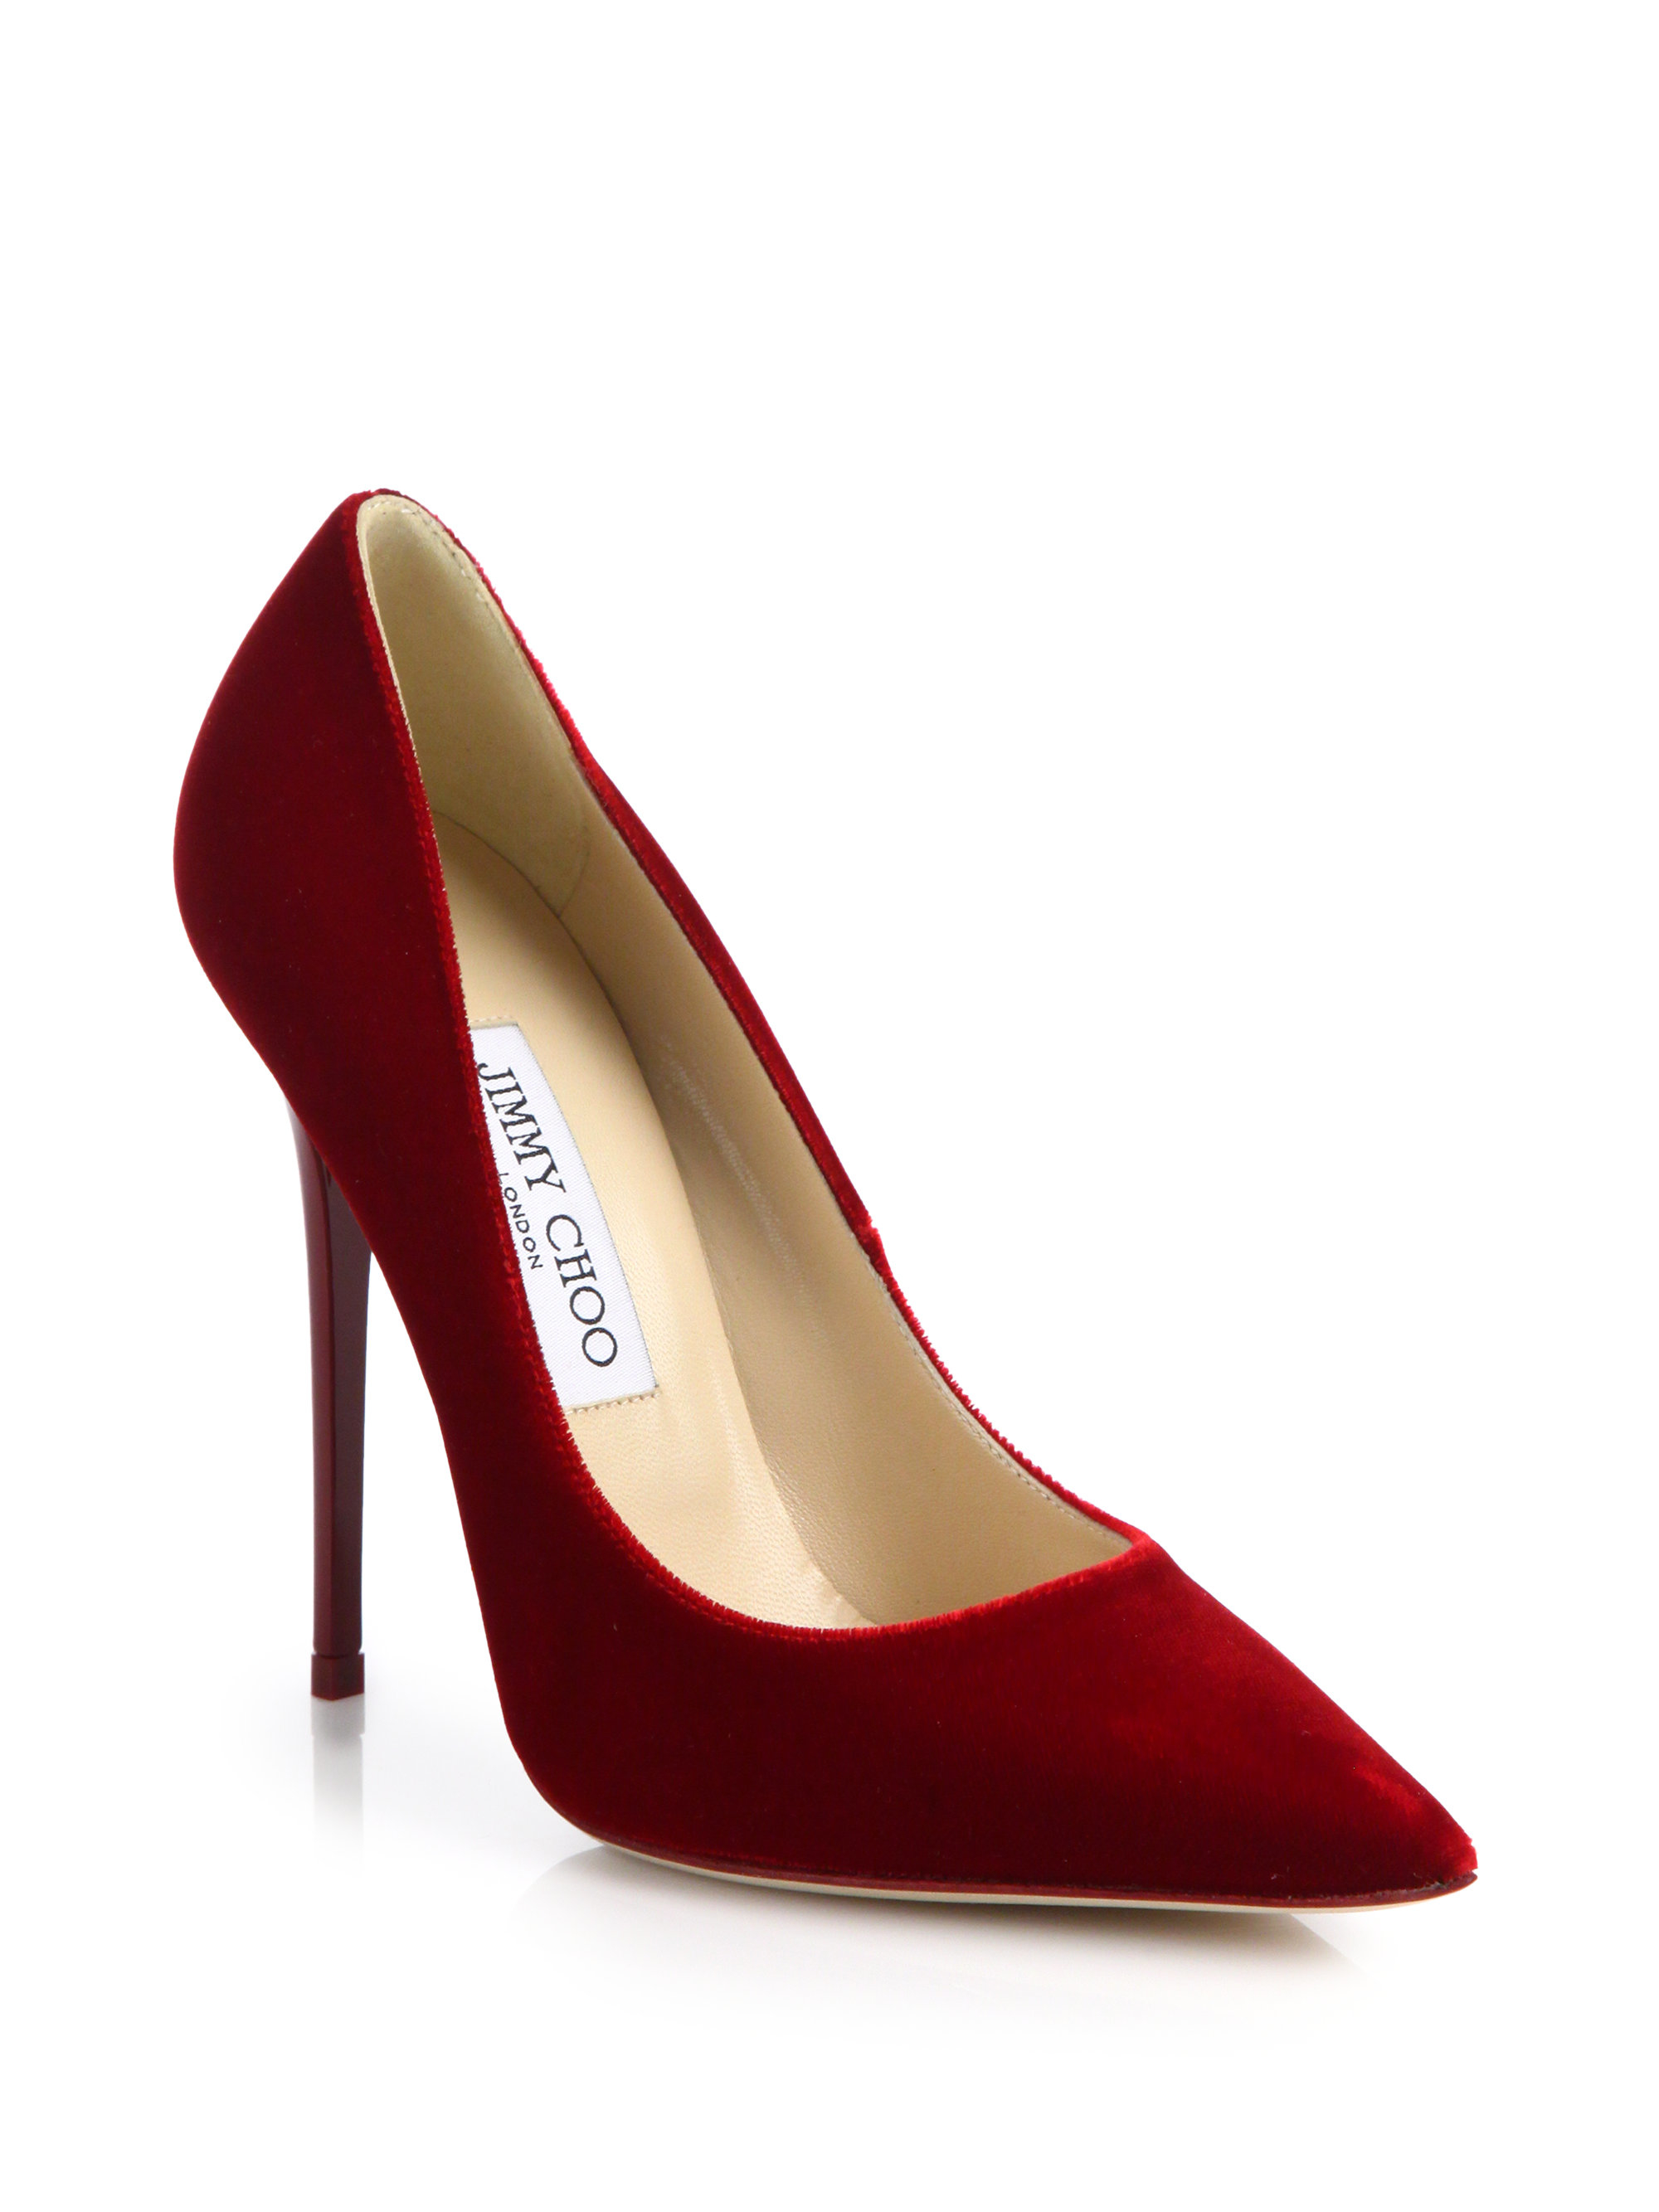 8dc06cc0fb0 netherlands jimmy choo red pumps 5efc2 697ca